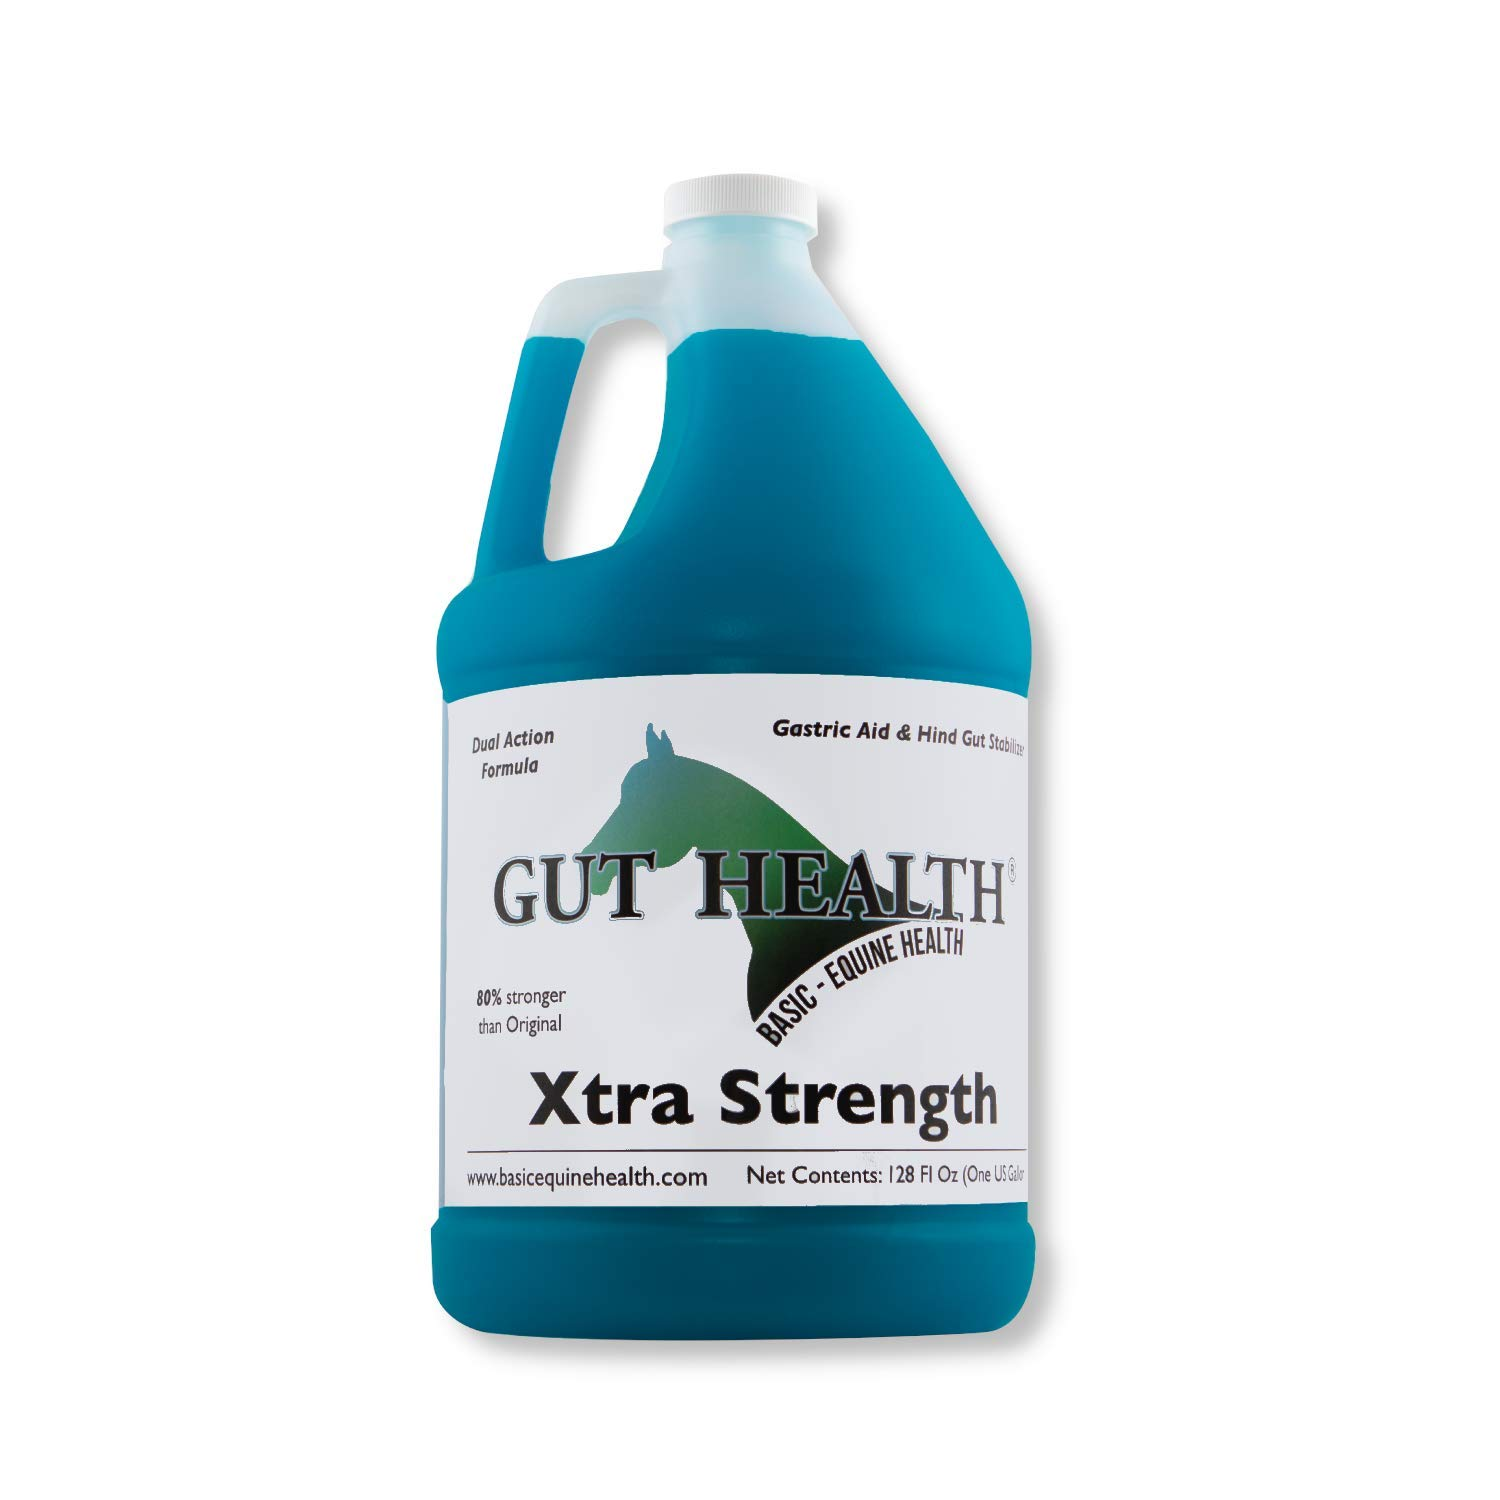 Gut Health Horse Feed Supplement - Xtra Strength Top Dress (1 Gallon) - Ulcer Aid for Horses That Promotes Improved Mood, Coat, Hoof Growth, and Weight Gain